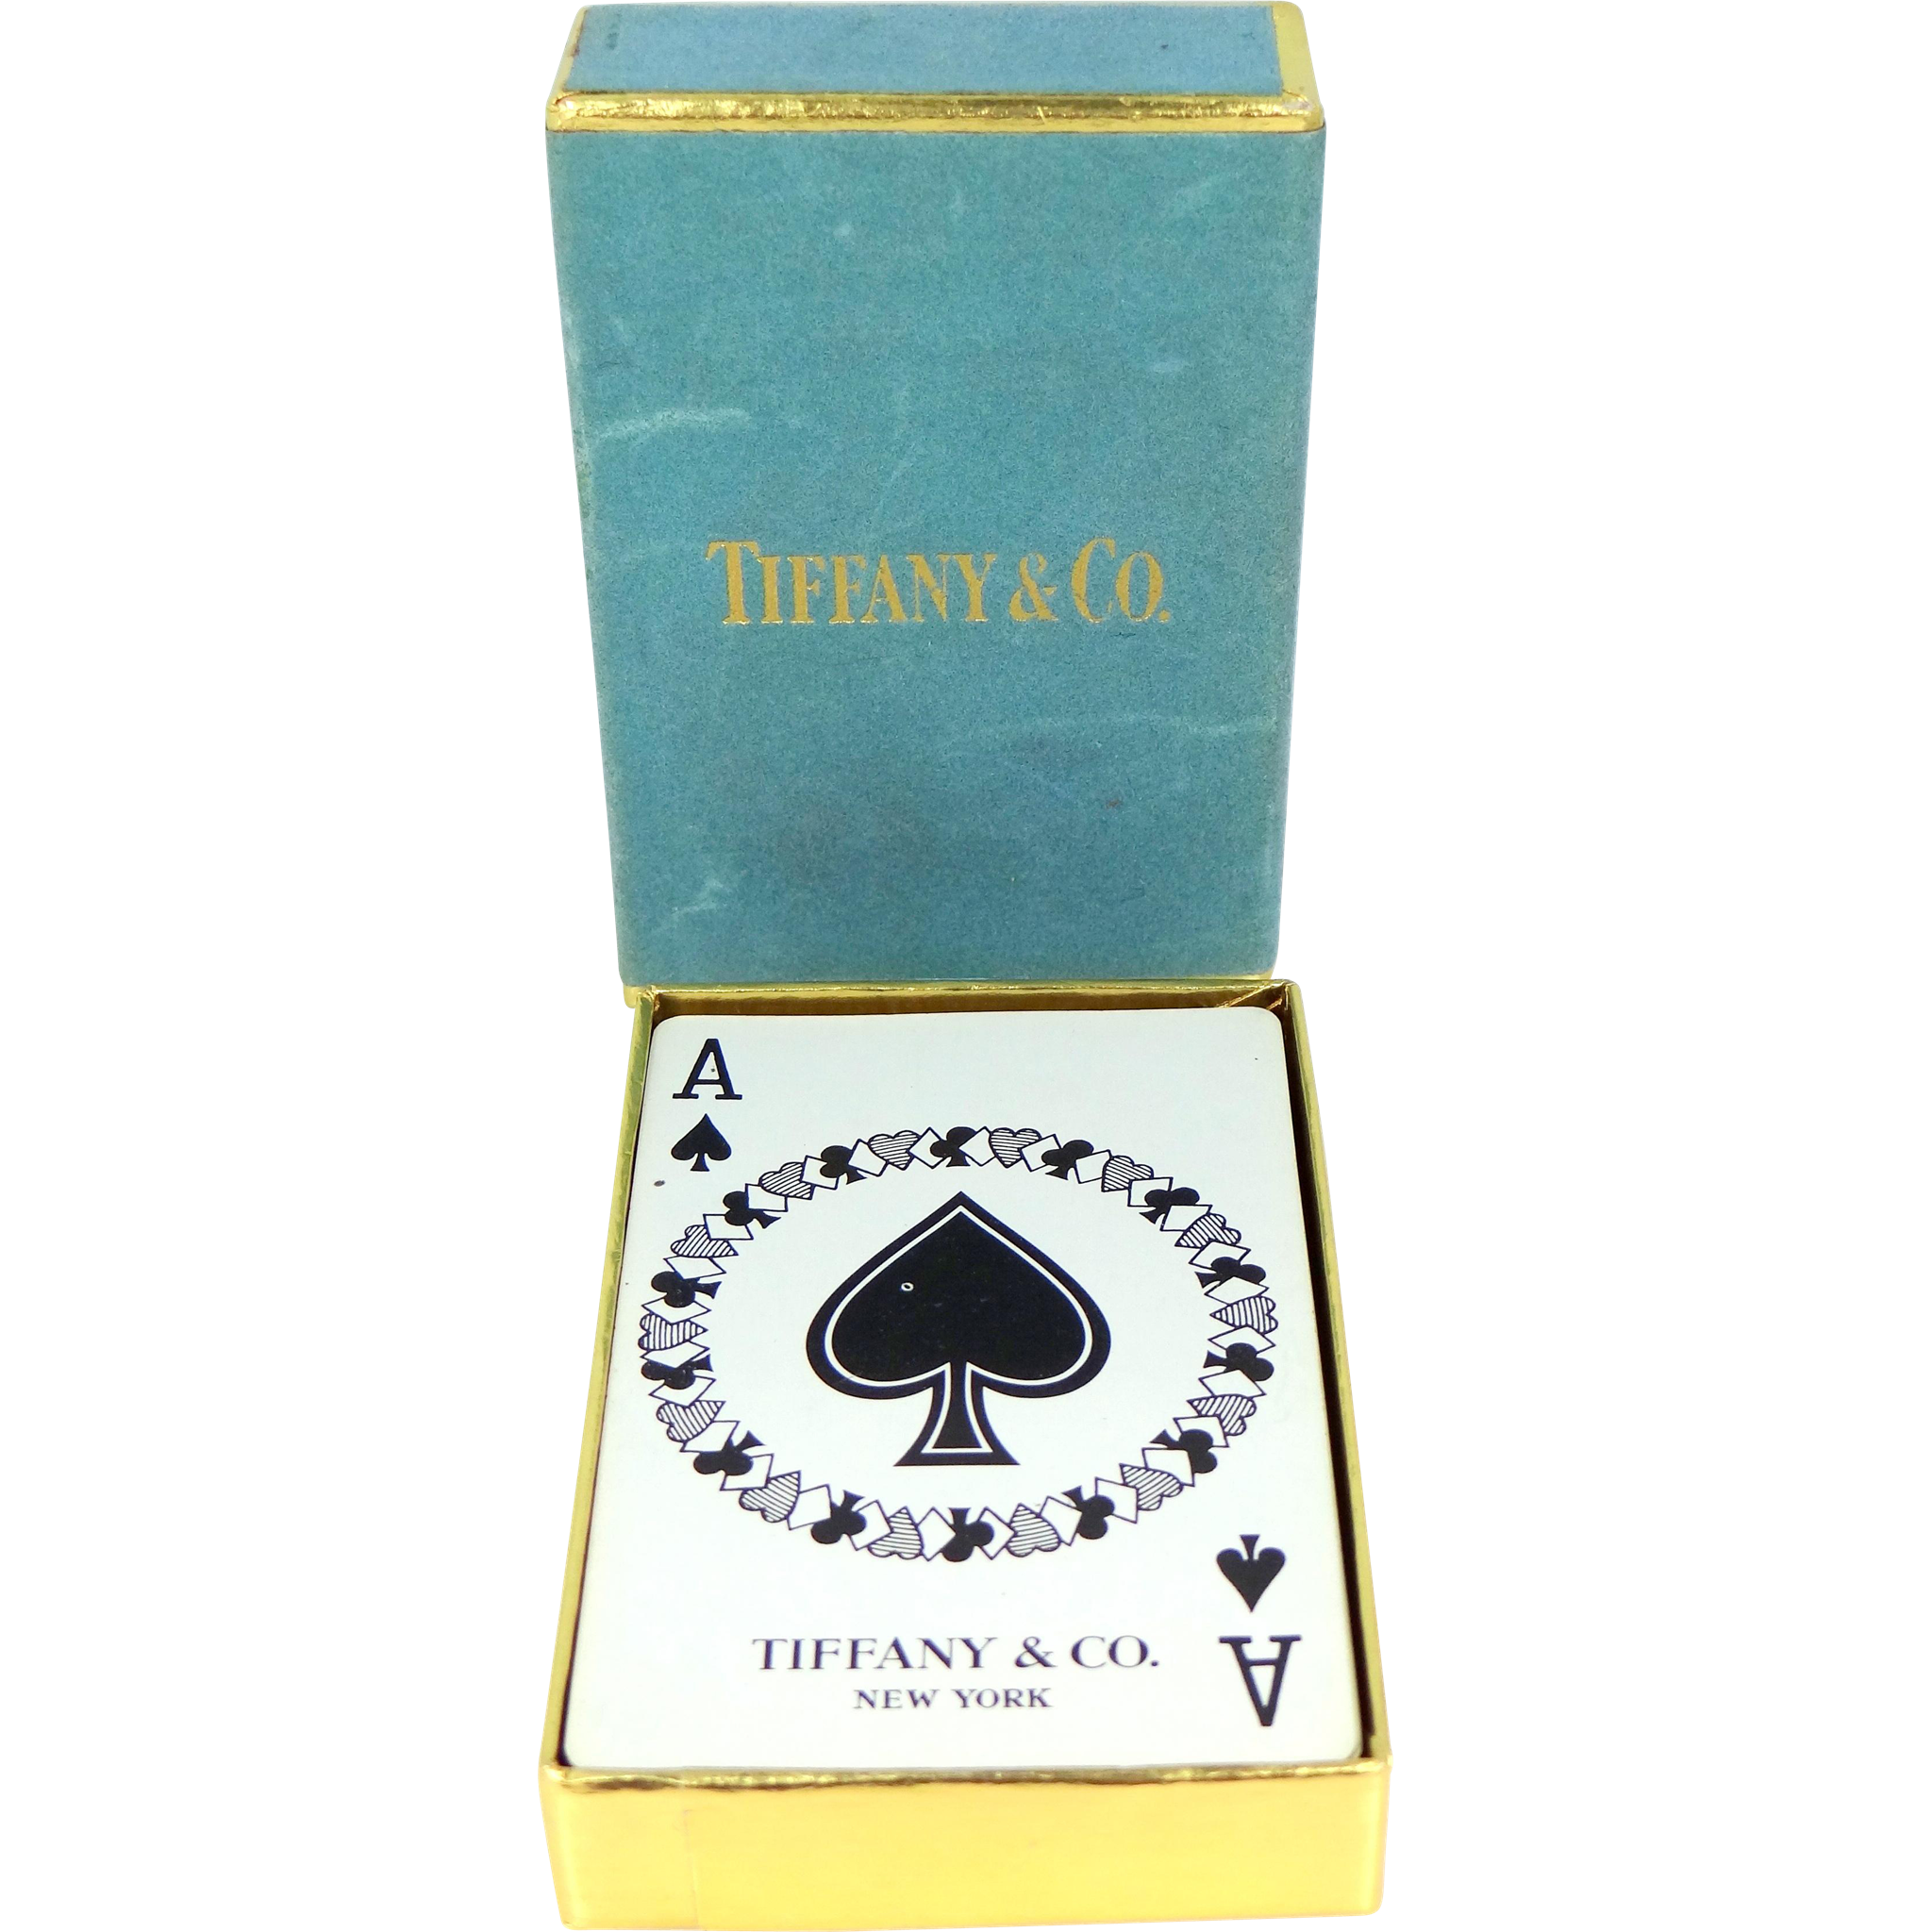 Tiffany & Co. Amusing Face Bridge Deck of Cards